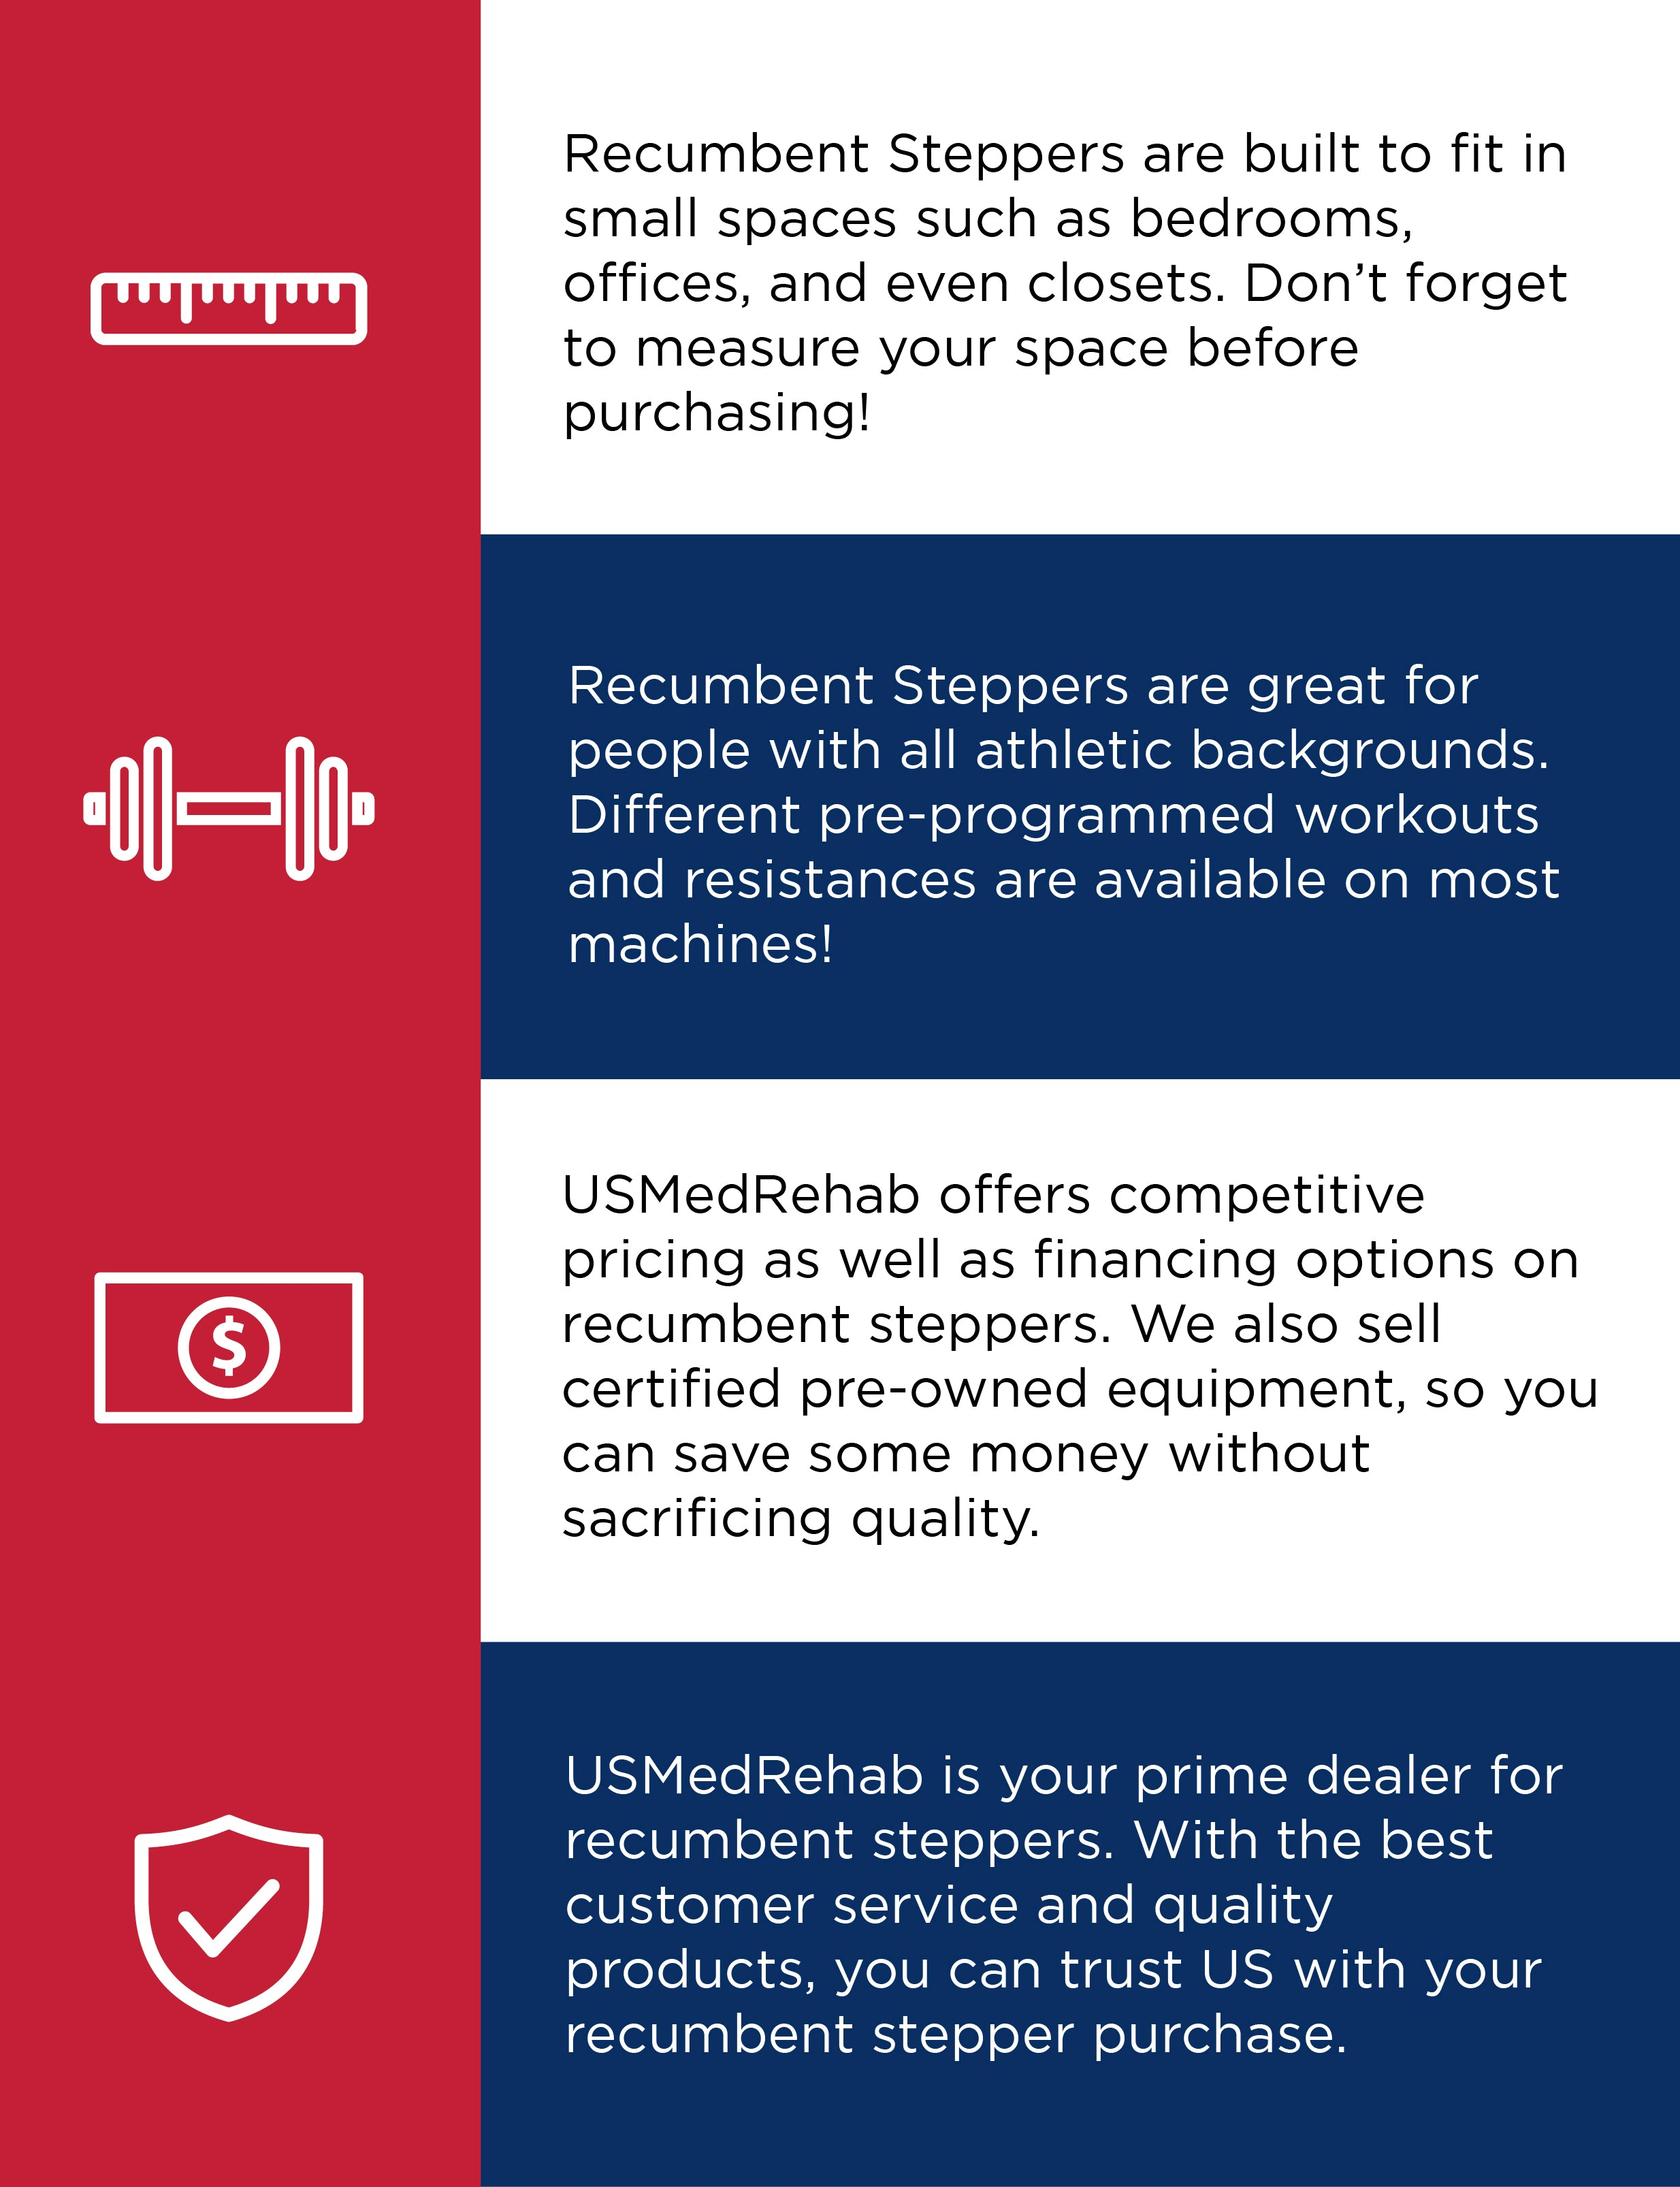 Why should you purchase a recumbent stepper from USMedRehab?